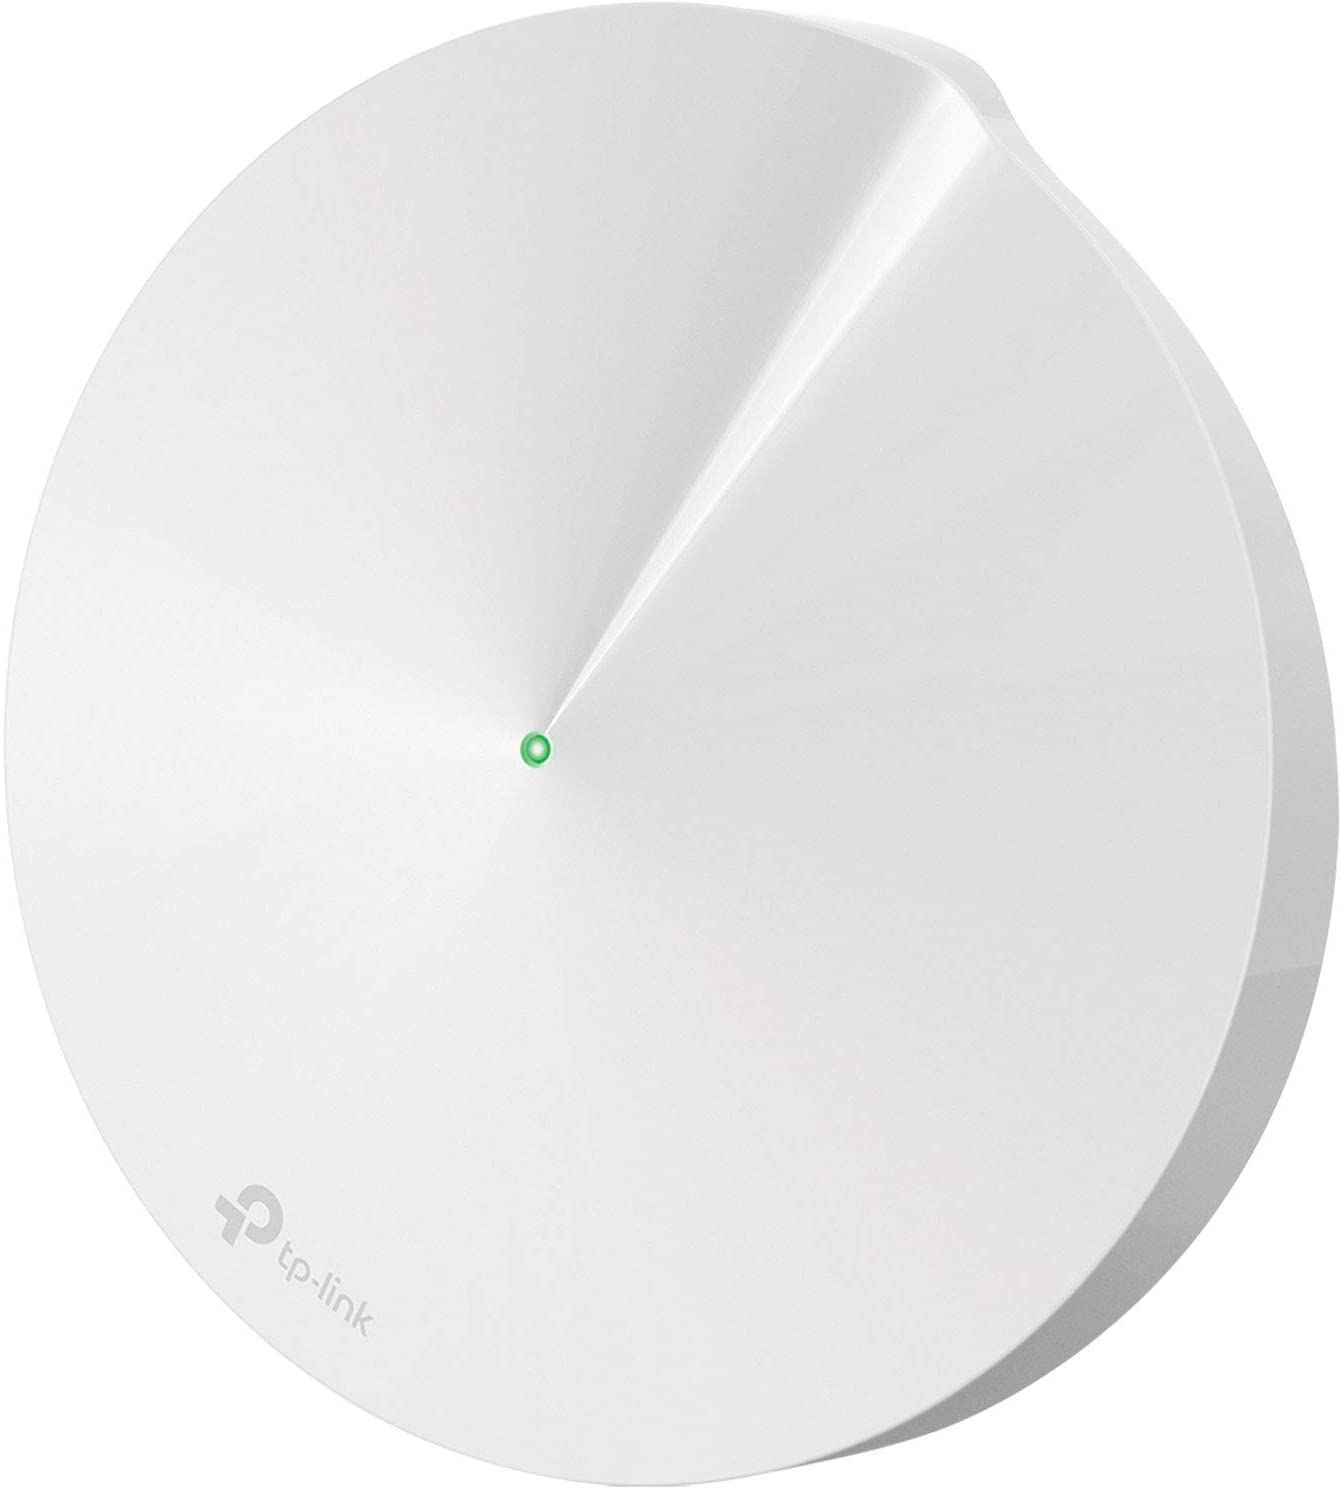 TP-Link Deco Mesh WiFi Router